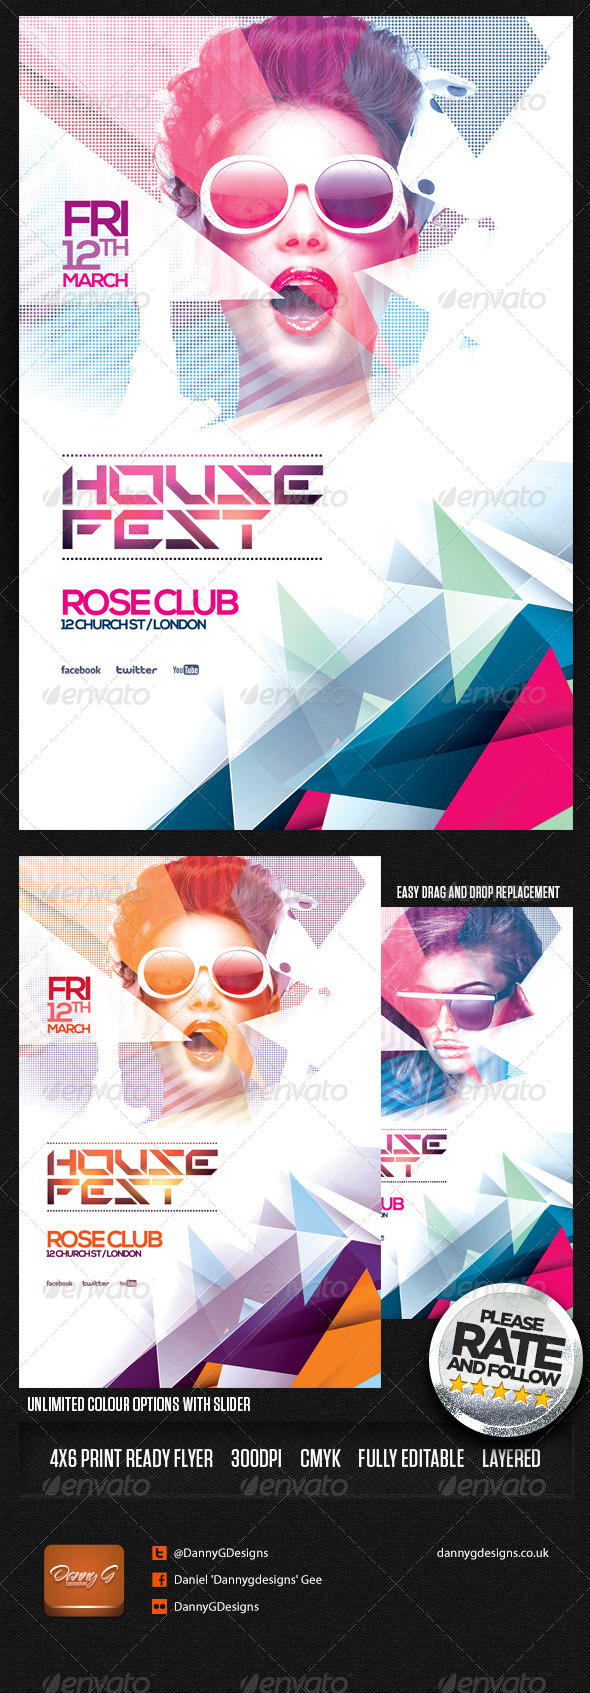 House Fest Flyer Template PSD - Clubs & Parties Events